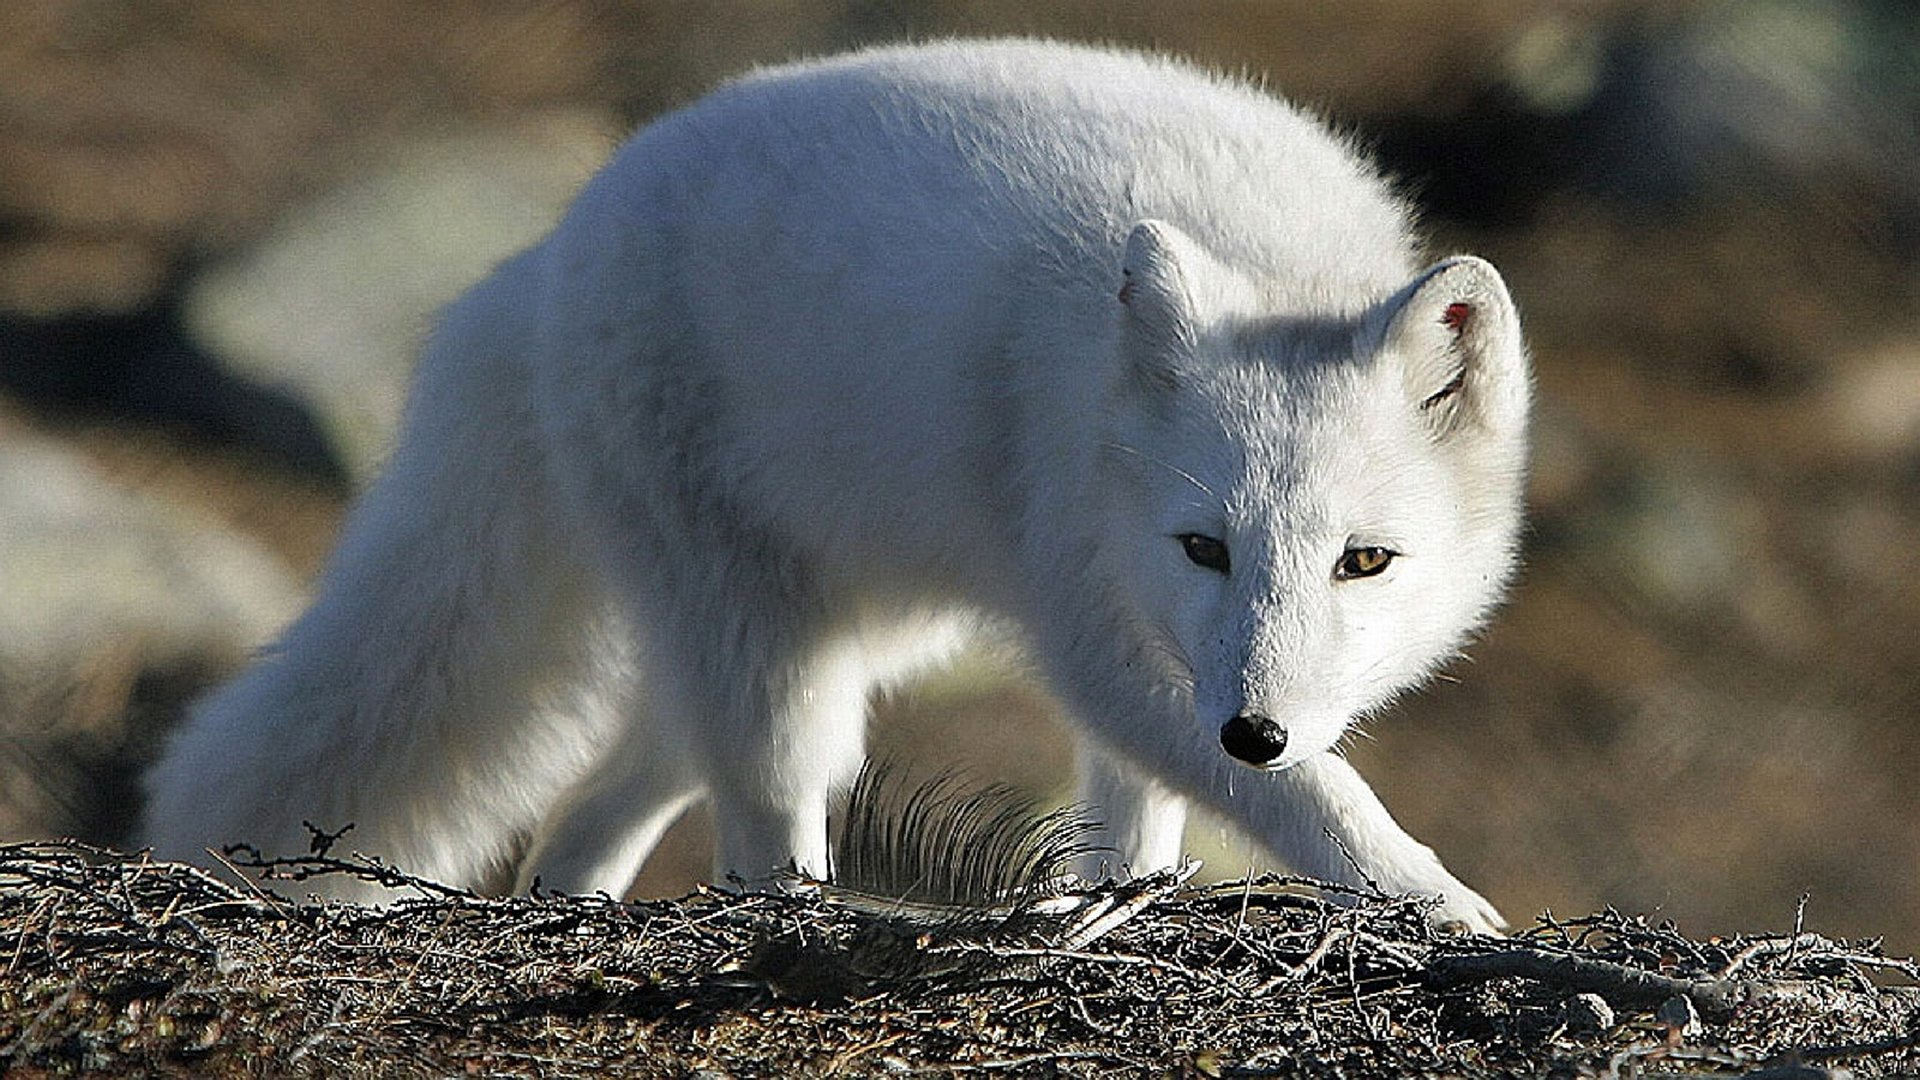 Download hd 1920x1080 Arctic Fox desktop wallpaper ID:98739 for free